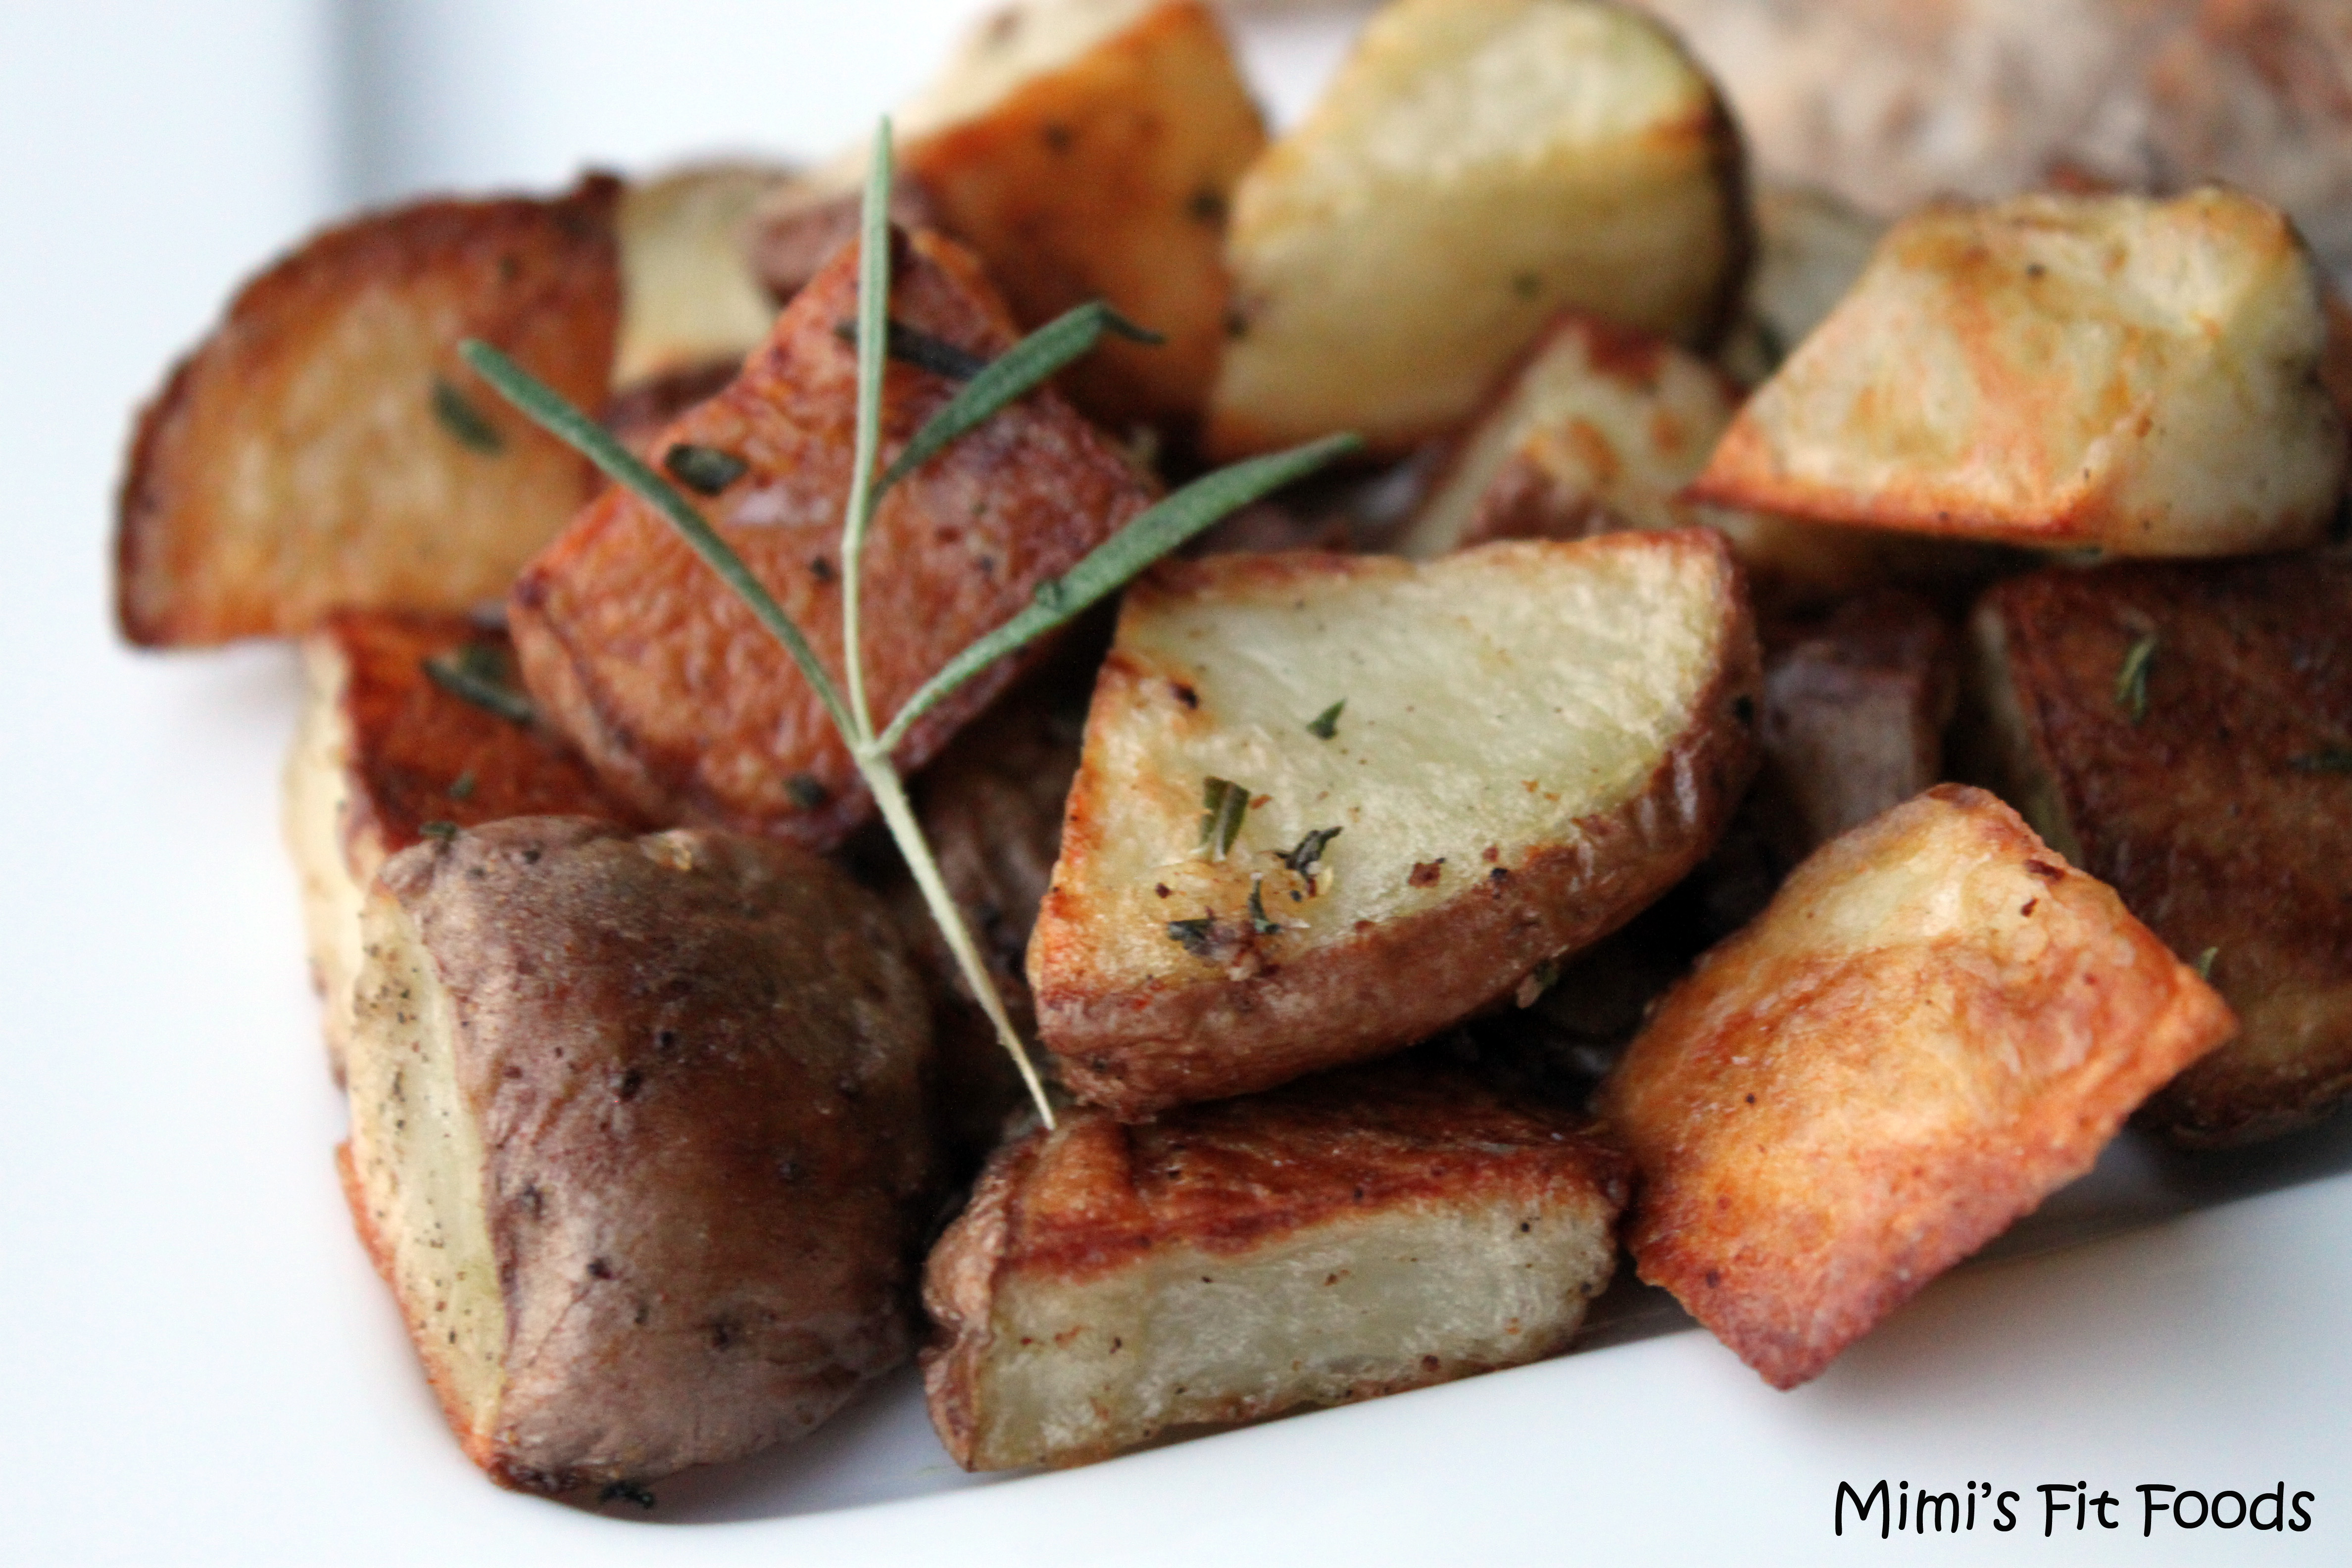 Roasted Red Potatoes with Garlic & Rosemary